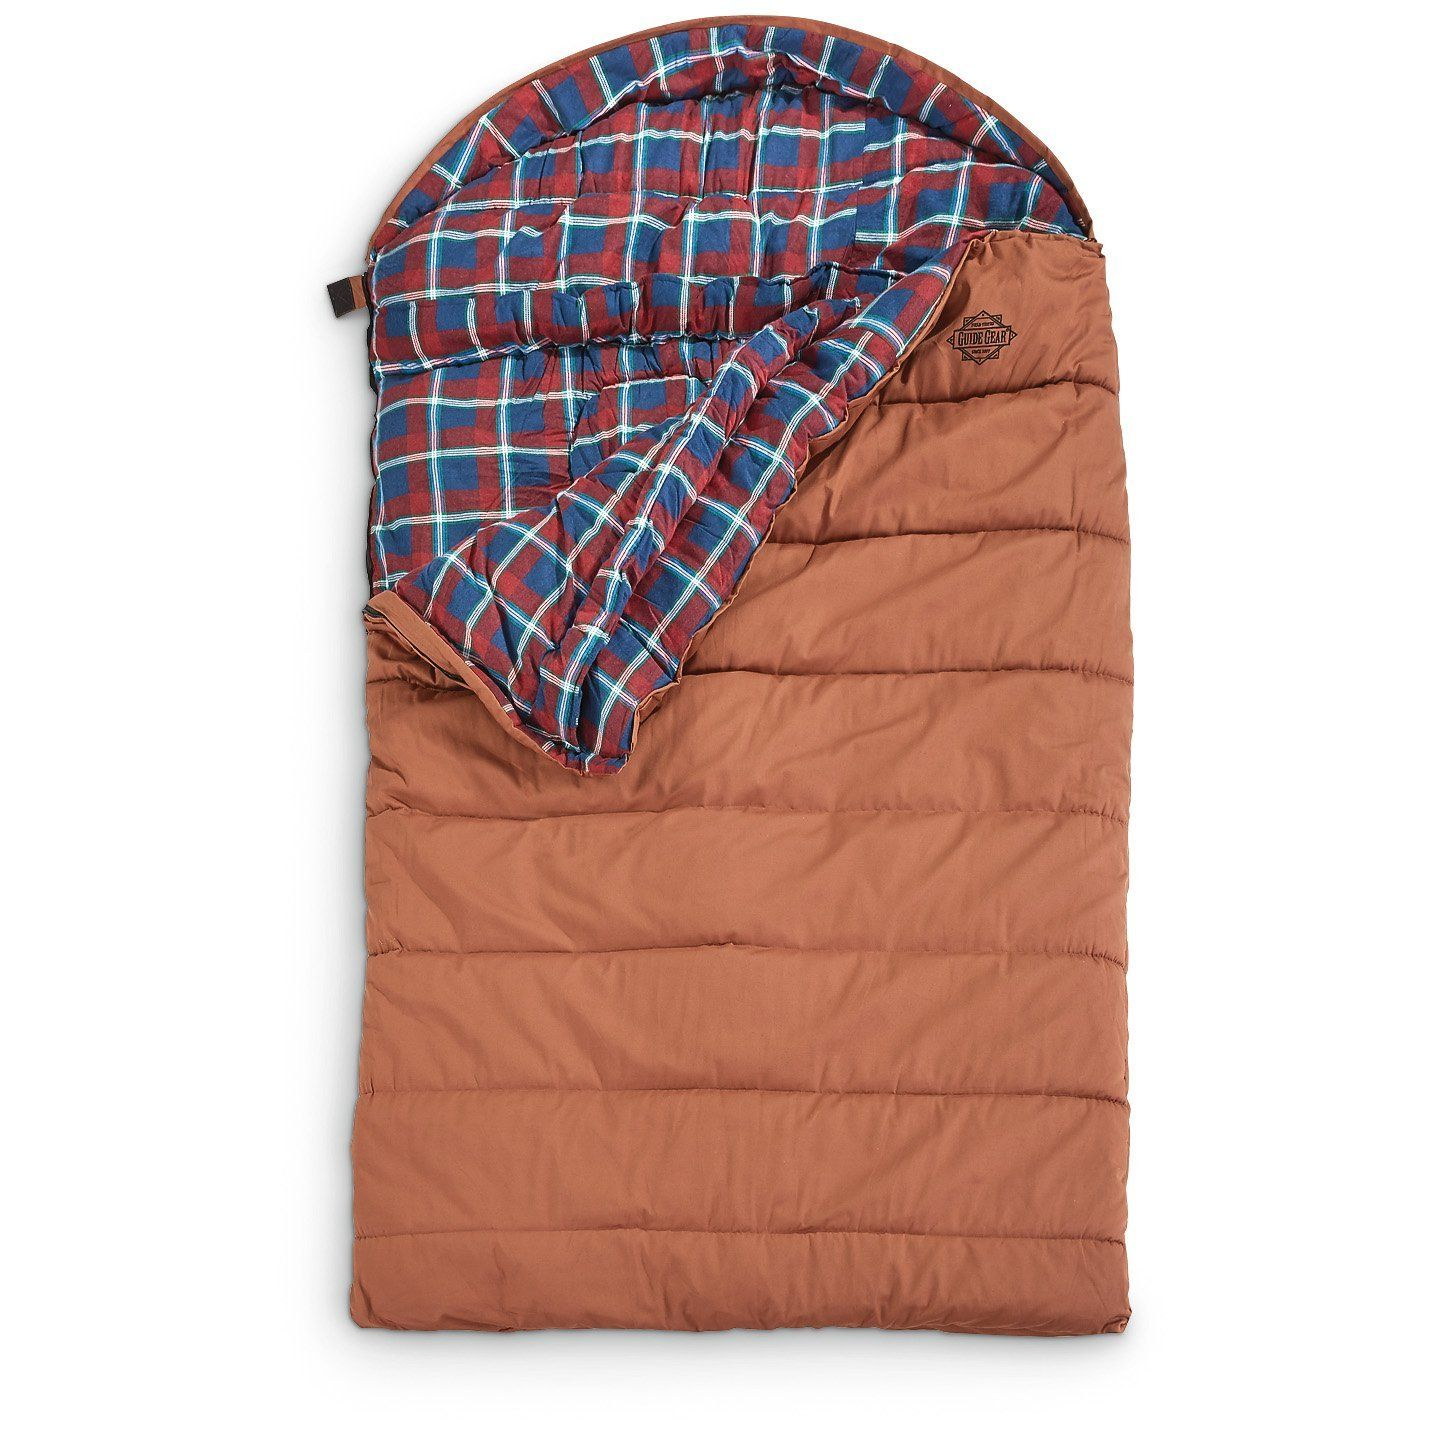 Guide Gear Cold Weather Double Sleeping Bag 0 Degree This Is An